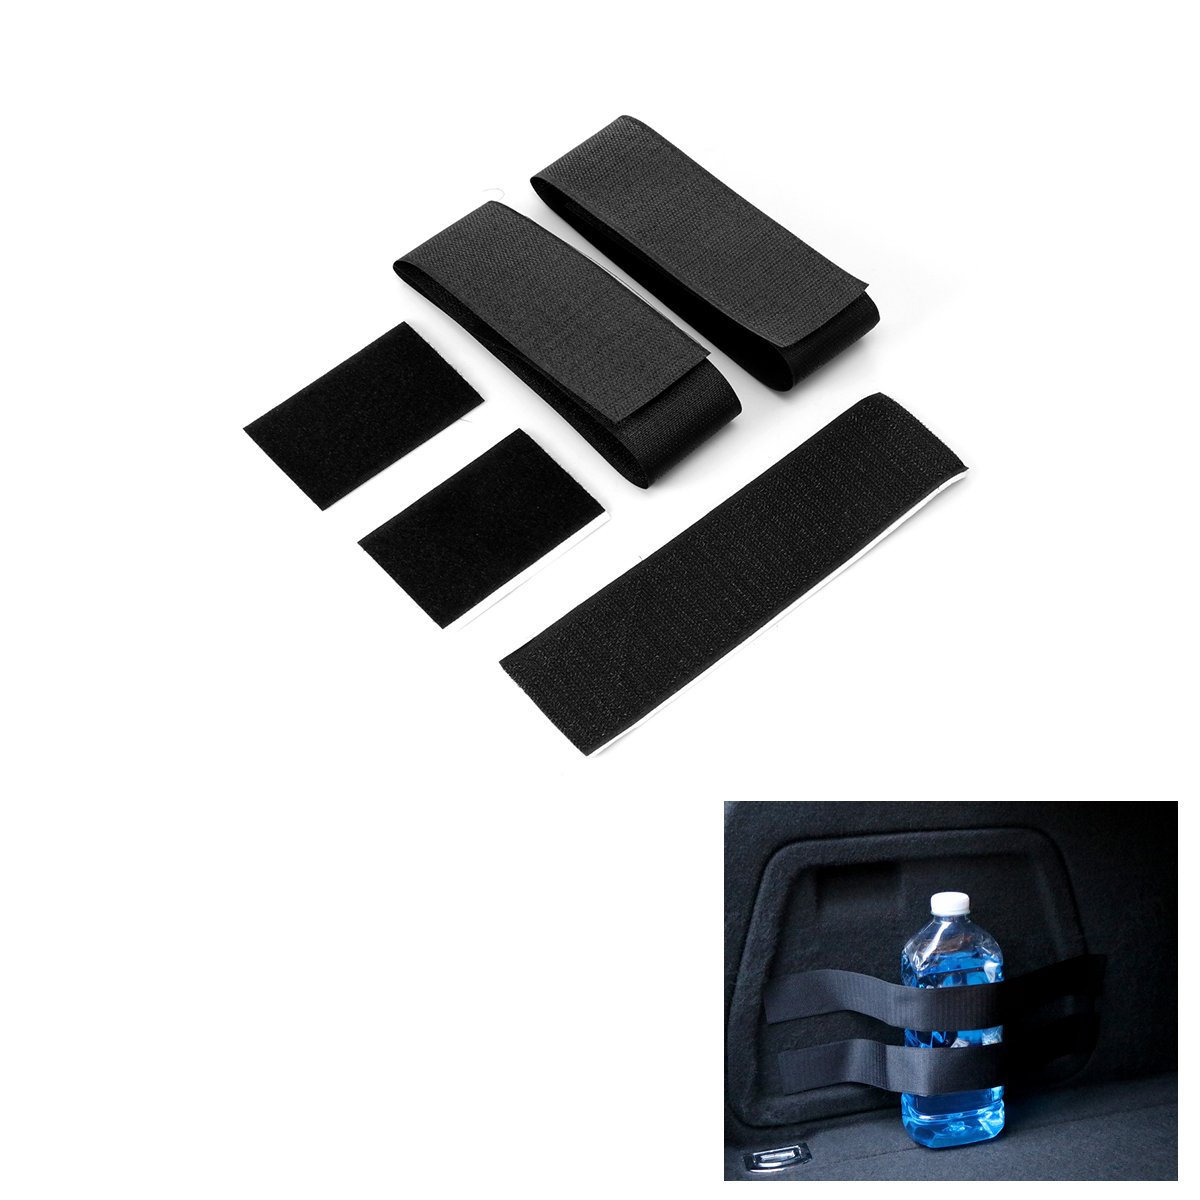 ONEVER Car Trunk Fixing Belt Extinguisher Fixing Strap Organizer Band Magic Tape Set Design Sticky Vehicle Accessories